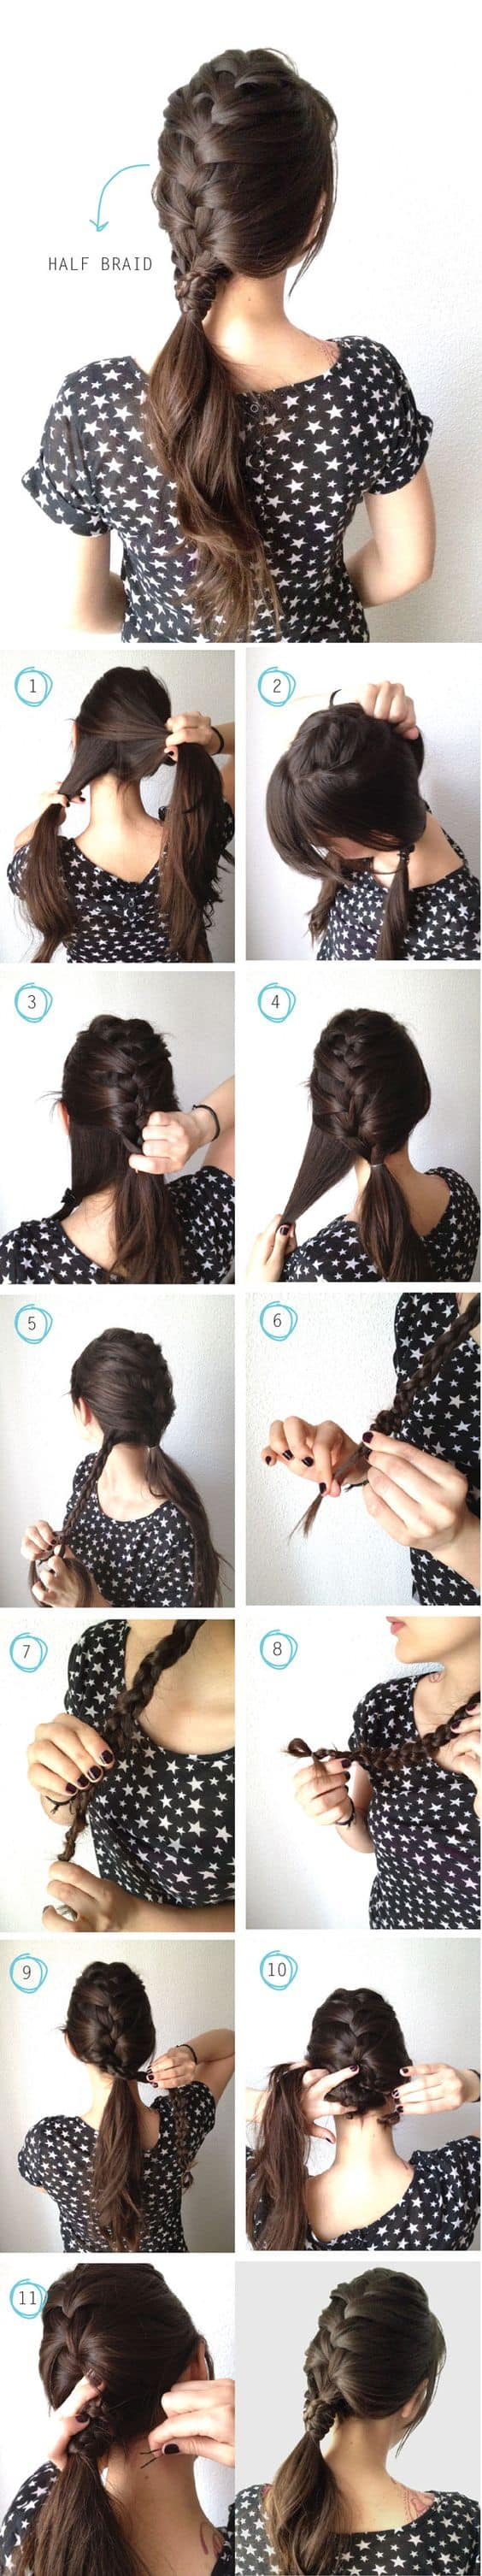 The Half Braid Half Ponytail Easy Hairstyle Tutorial For Sports